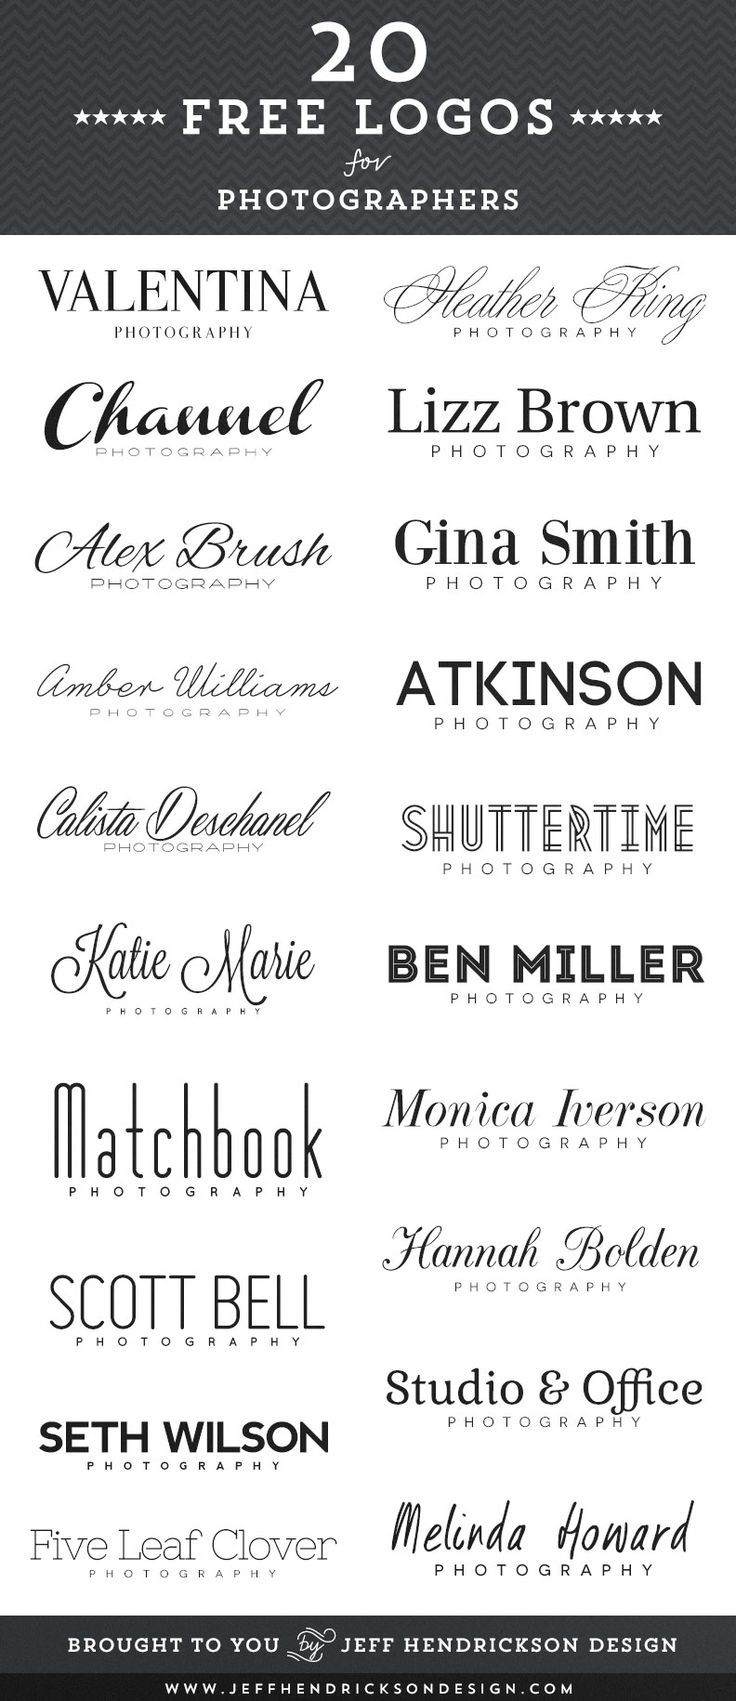 20 Free Logos for Photographers is all about the beautiful simplicity, not the freebies. Good idea for a simple project.